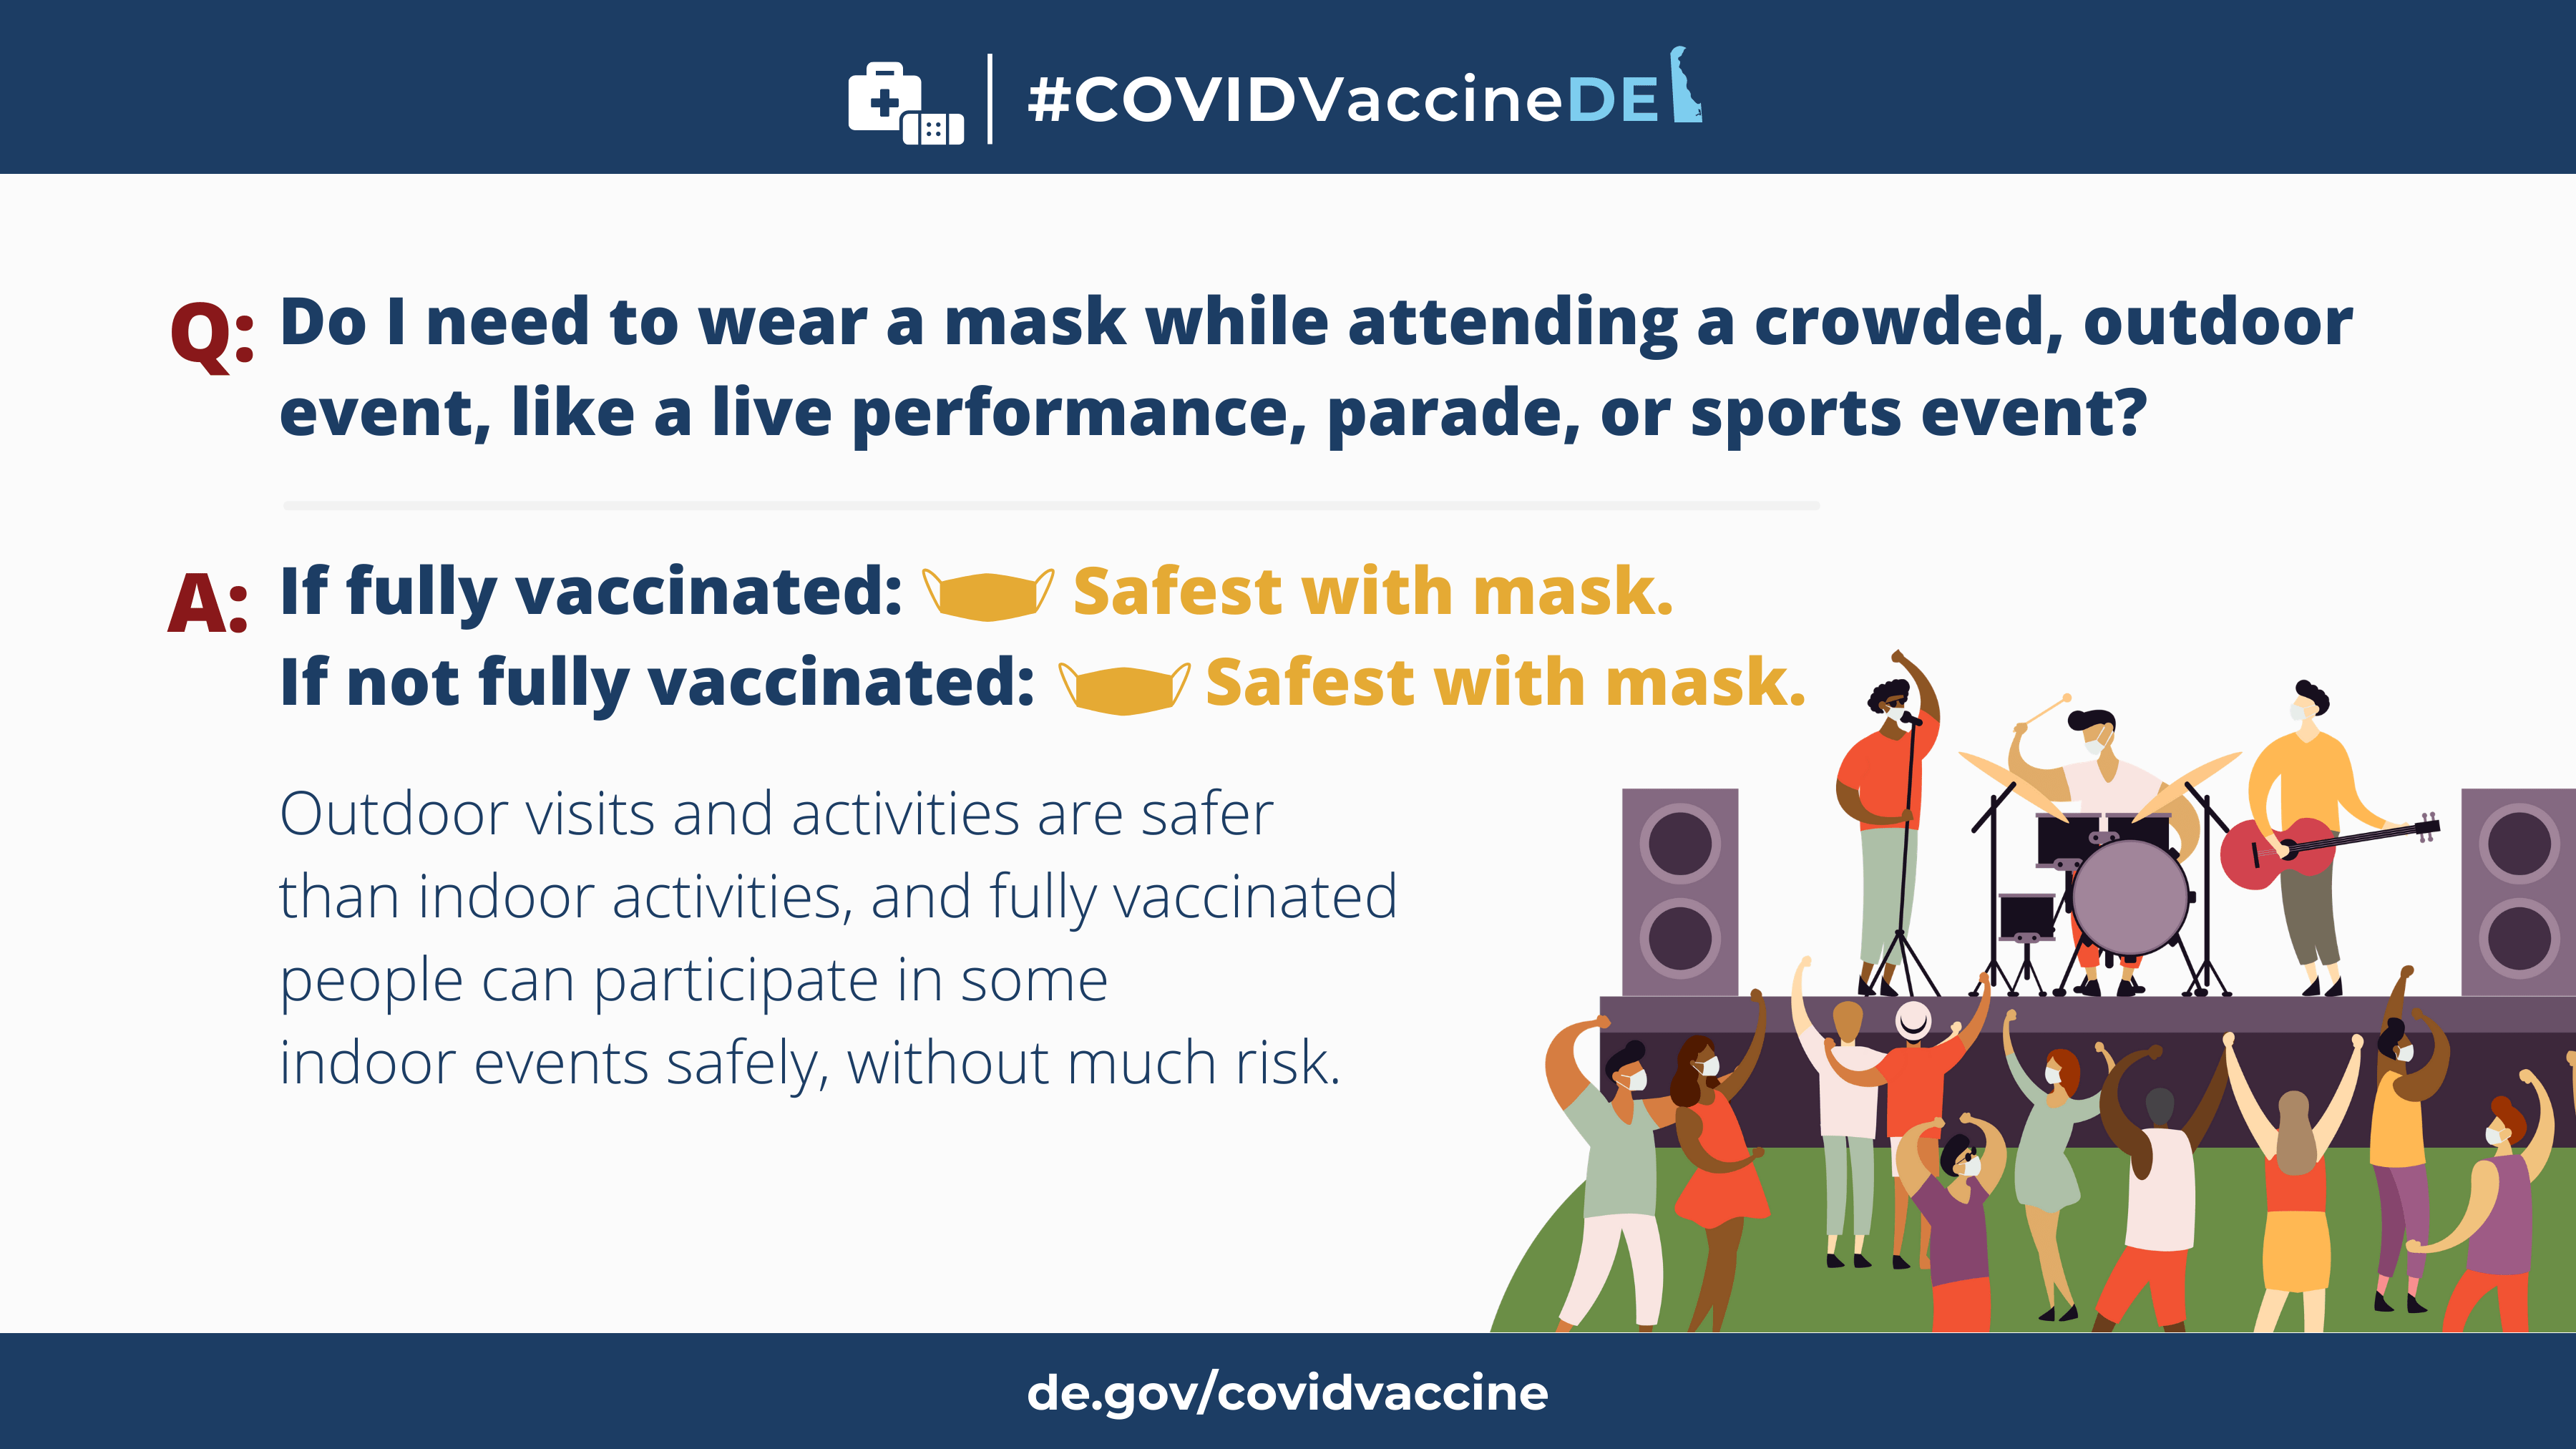 CovidVacineDE Questions and Answers series, question: Do I need to wear a mask while attending a corwded, outdor event, like a live perfomrance, parade, or sports event? Answer: If fully vaccinated, safest with a mask, if not vaccinated, safest with a mask.